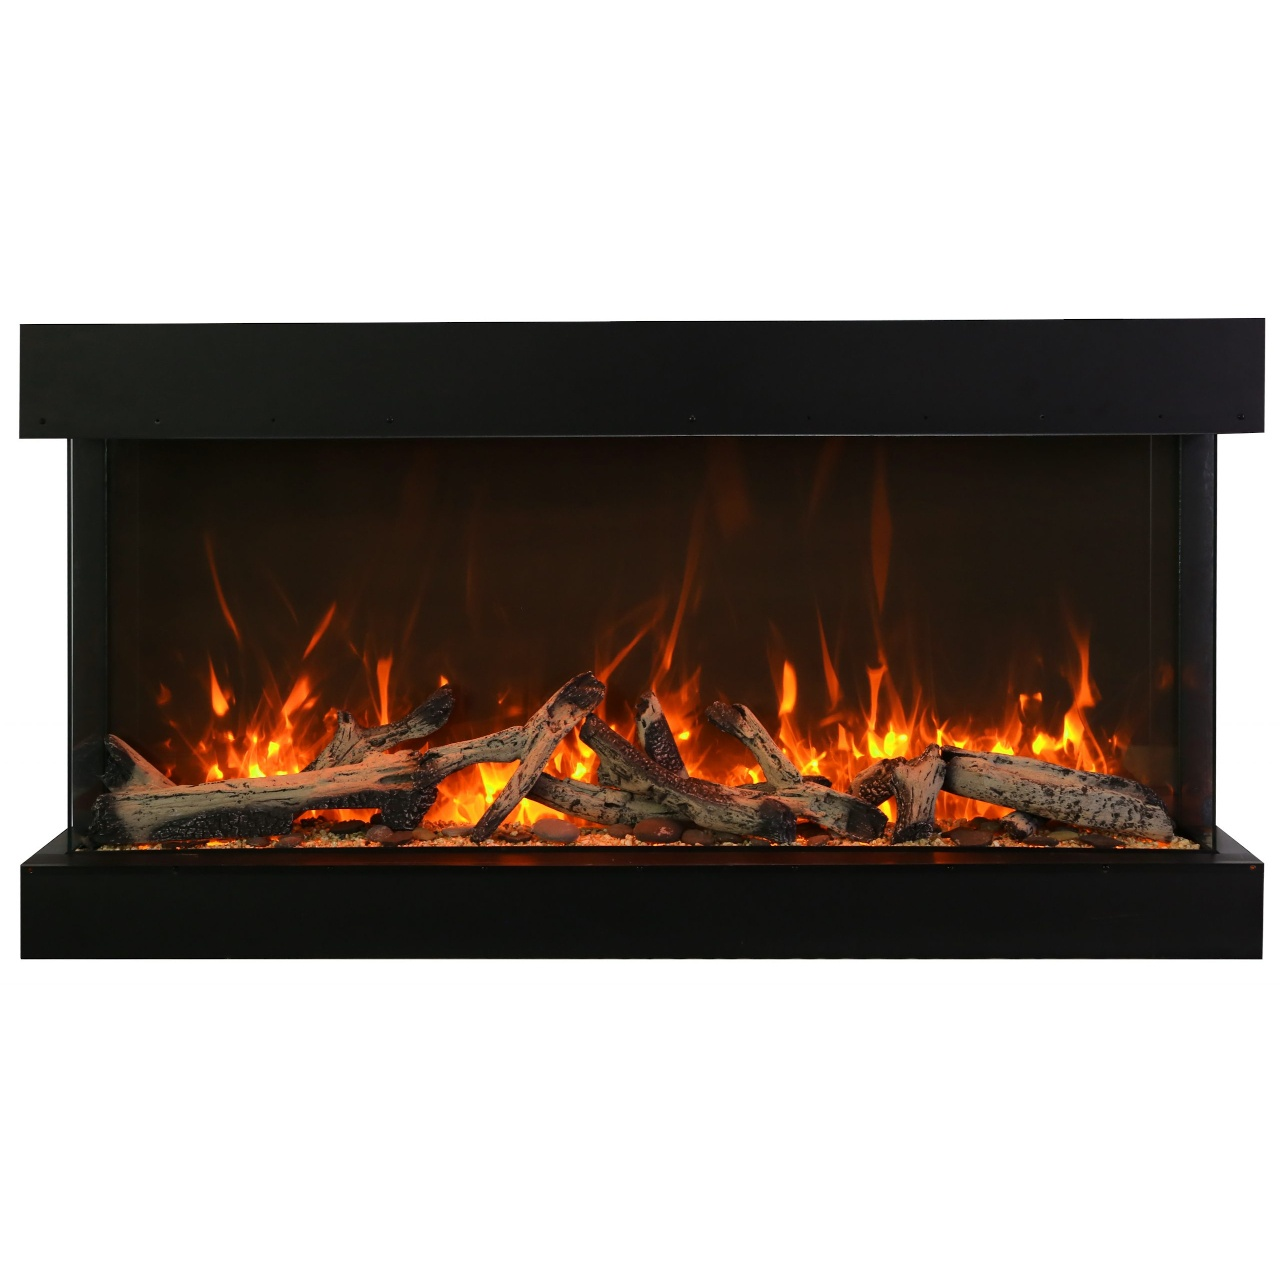 Amantii 40 Tru View Extra Tall 3 Sided Electric Fireplace 40 Trv Xt Xl Electric Fireplaces